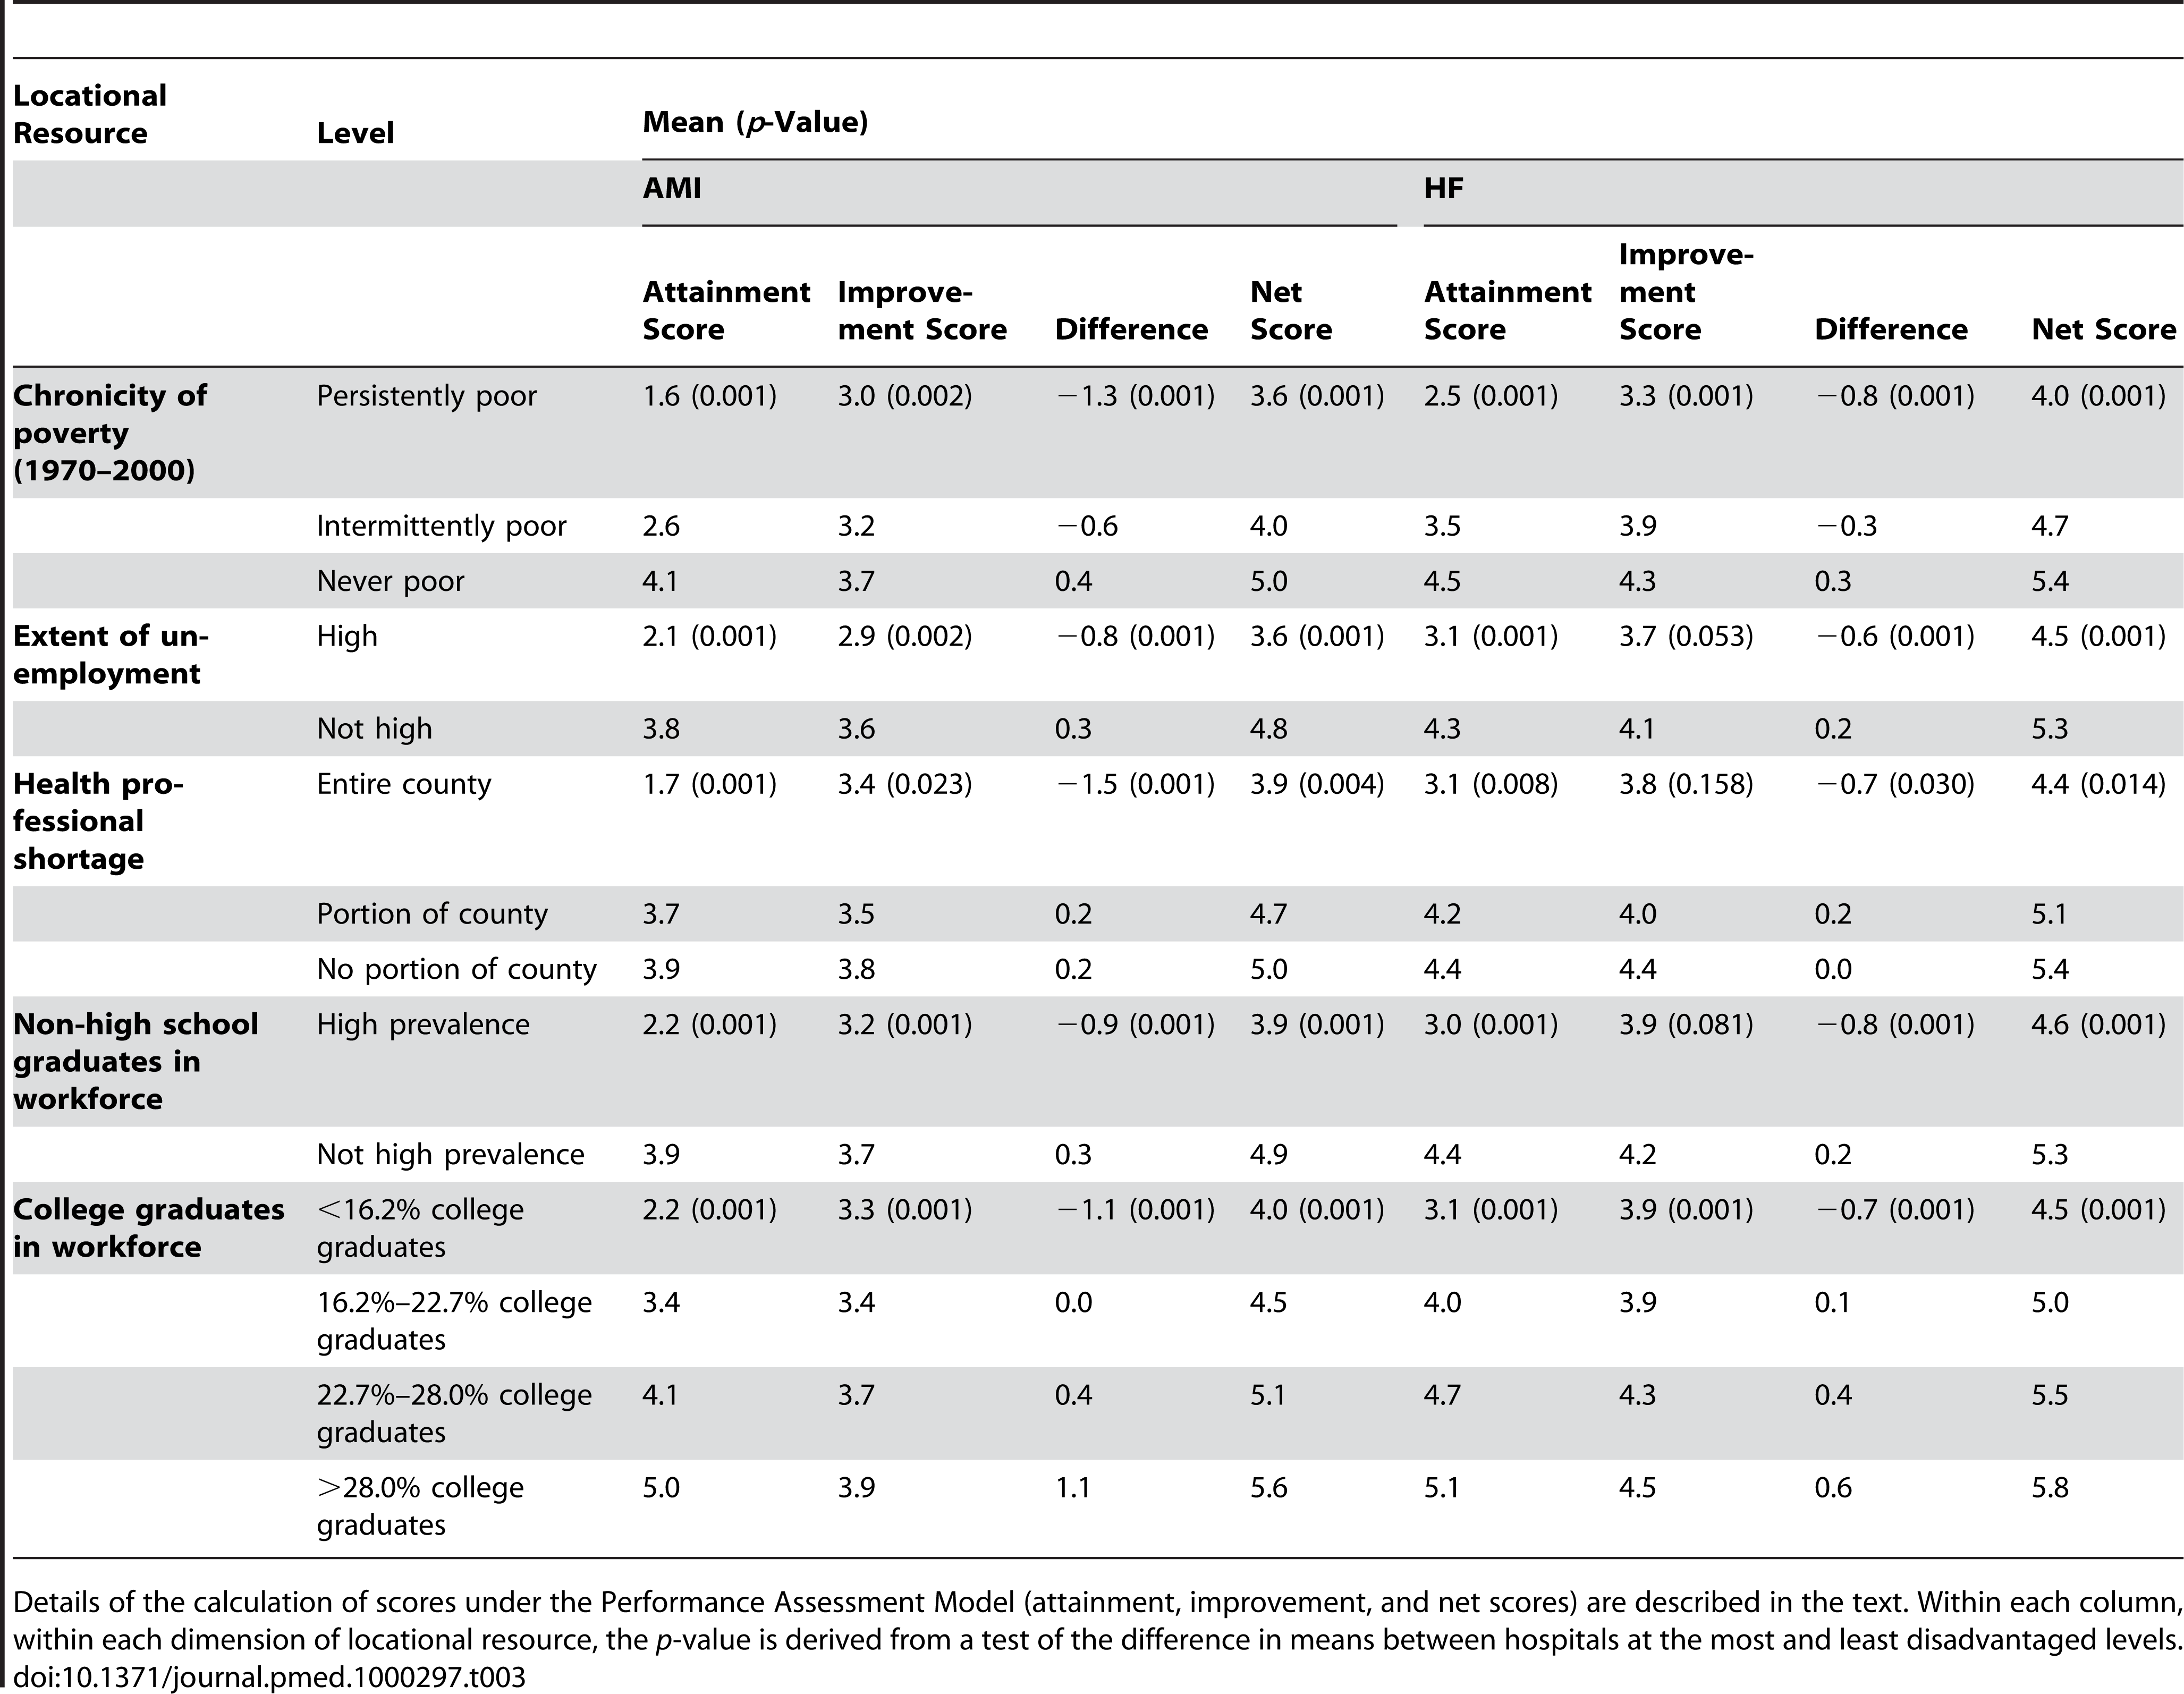 Mean Performance Assessment Model scores (attainment, improvement, and net score), by hospital locational resource levels, US Hospitals, 2007.